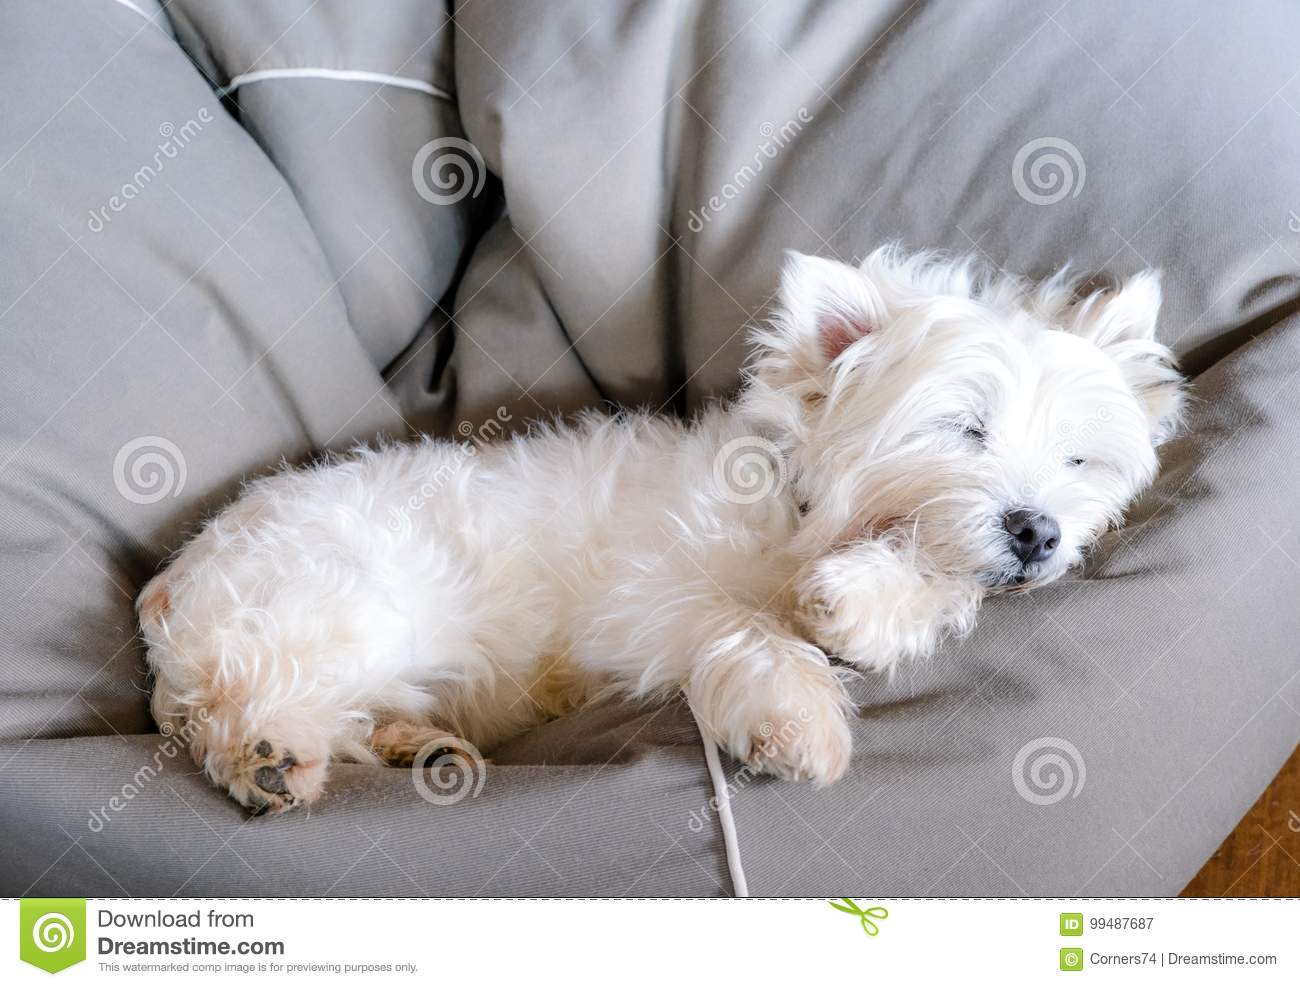 Senior West Highland White Terrier Westie Dog Sleeping In A Bean